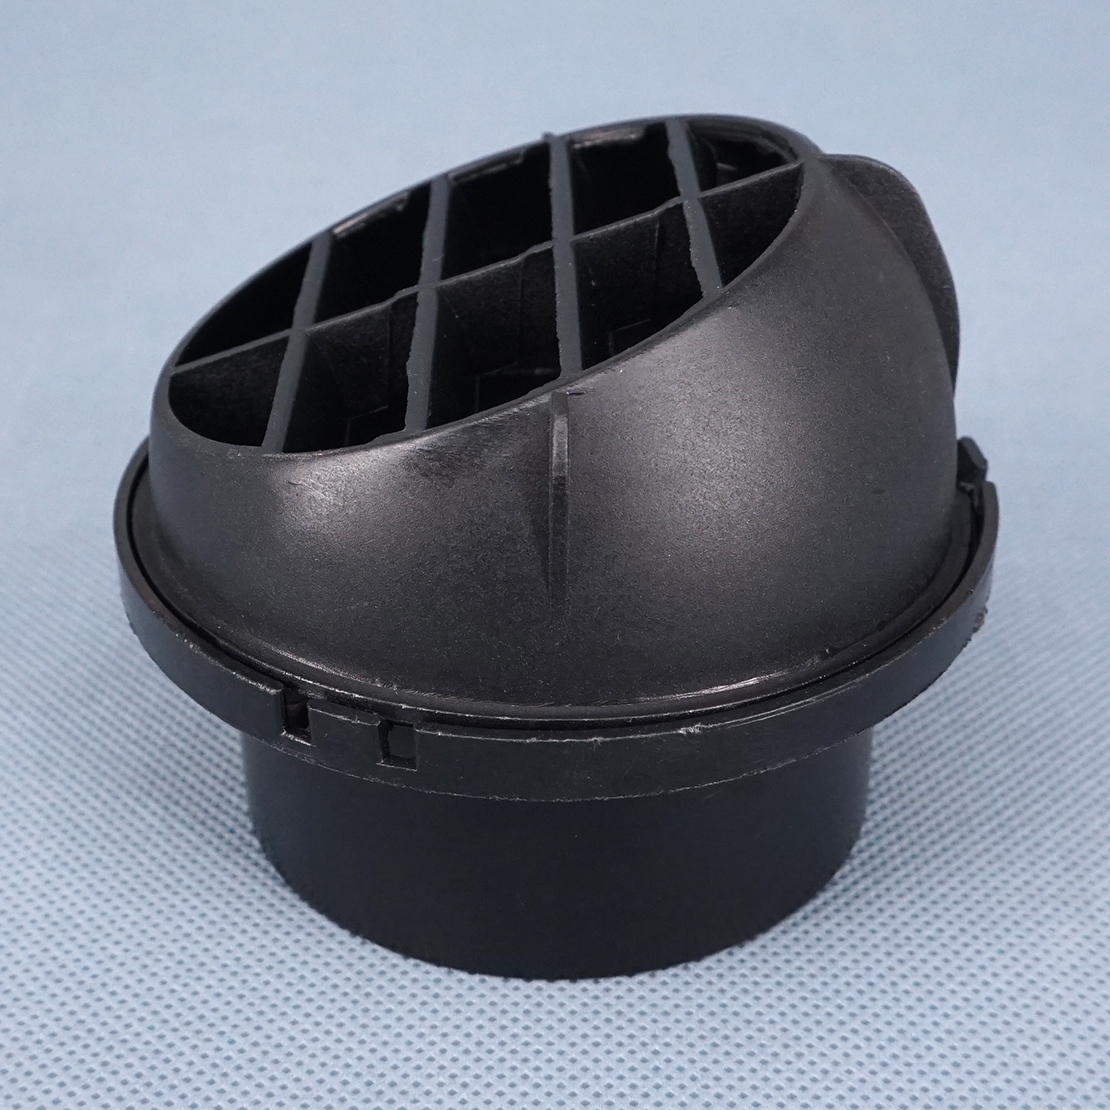 75mm Rotatable Air Outlet Vent Net Cover Cap of Exhaust Pipe for Air Diesel